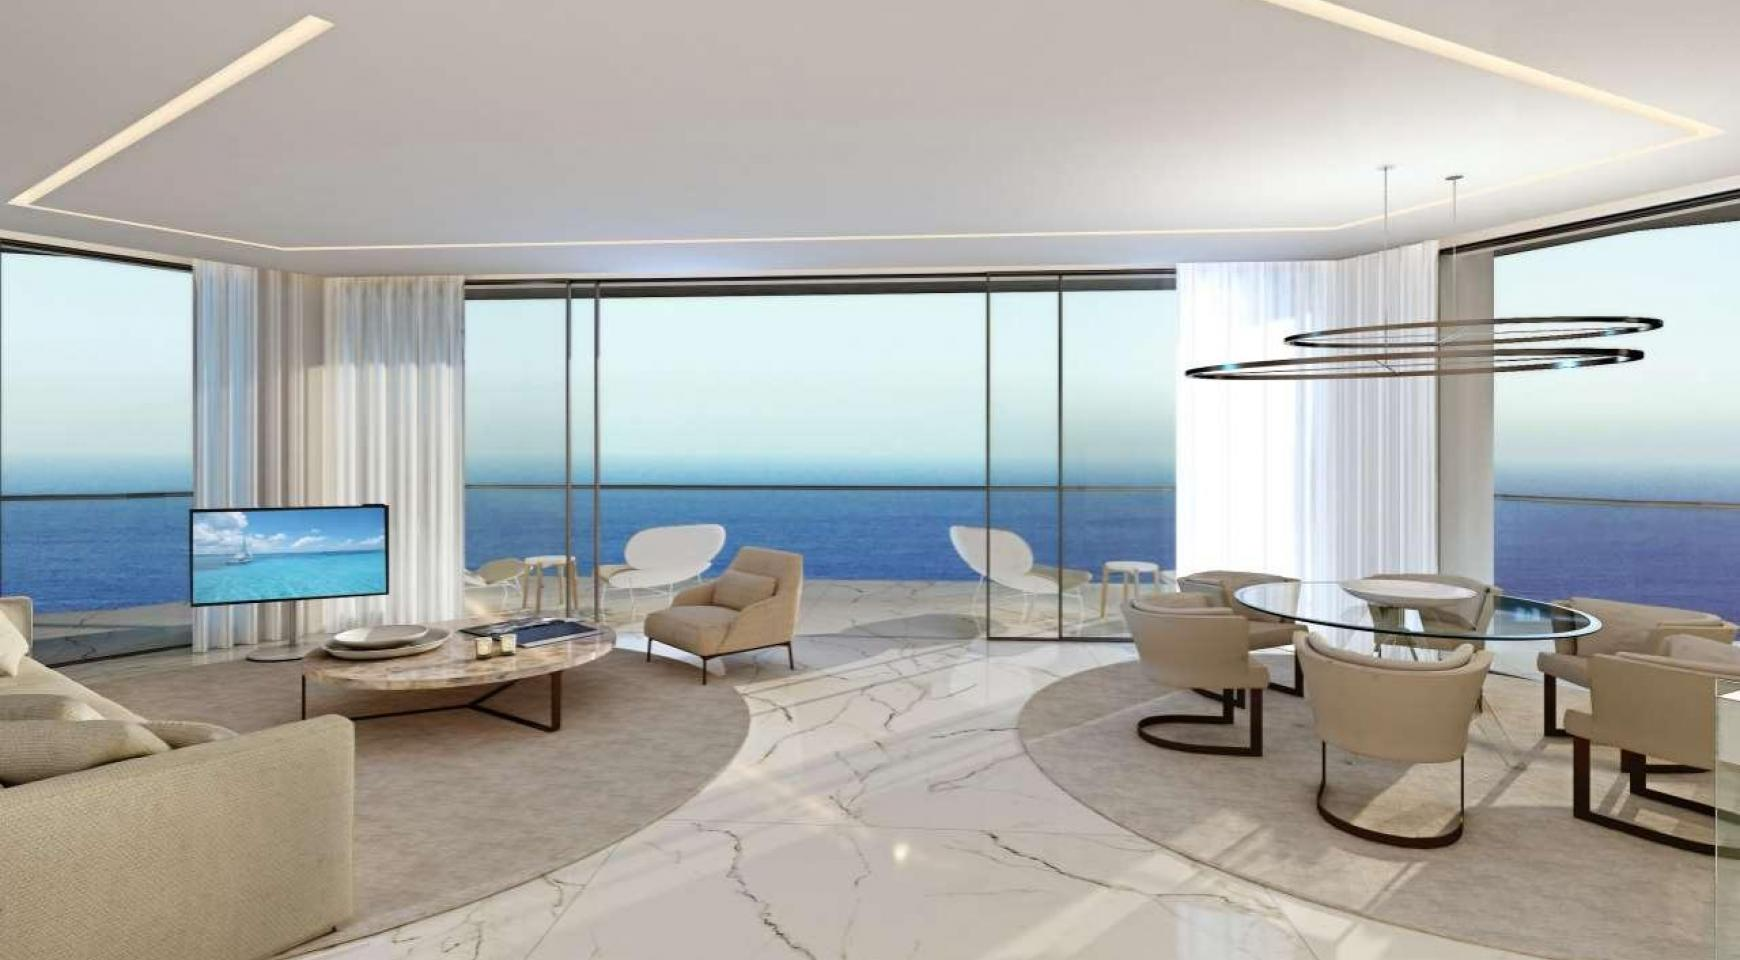 Exclusive 4 Bedroom Apartment in a New Project by the Sea in the City Centre - 7